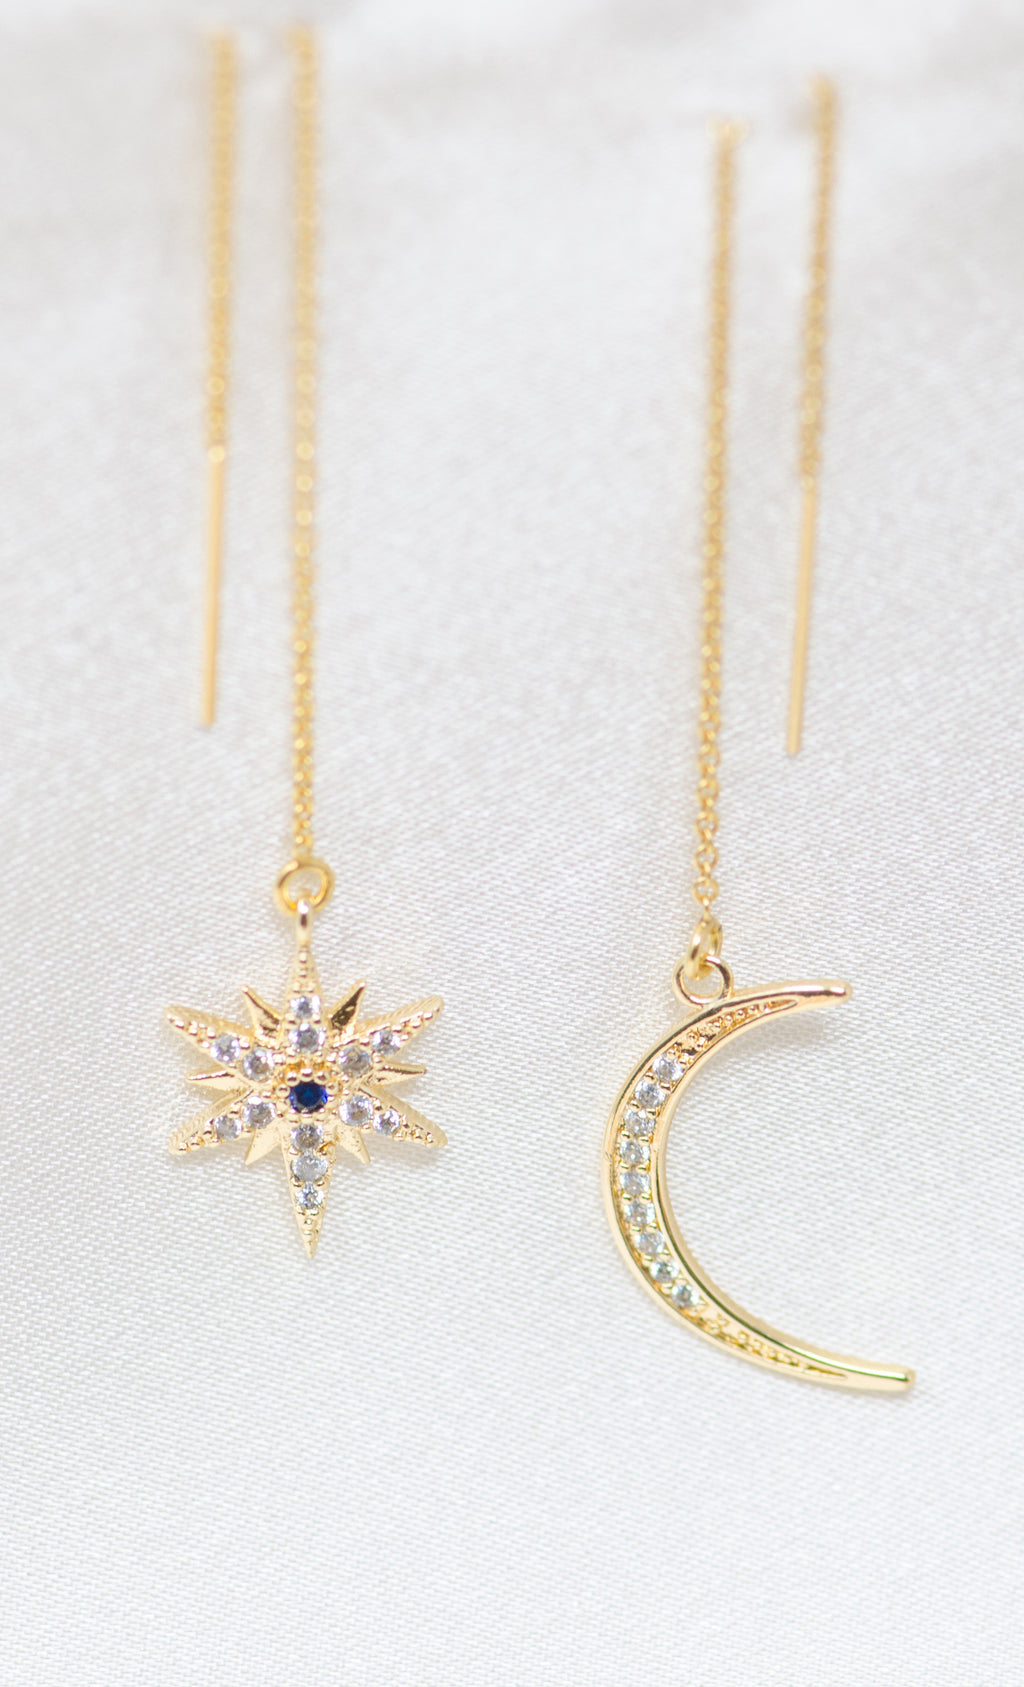 My Moon and Stars 14K Gold Filled with Rhinestone Blue Crystal Center Stone Threader Statement Dangle Earrings